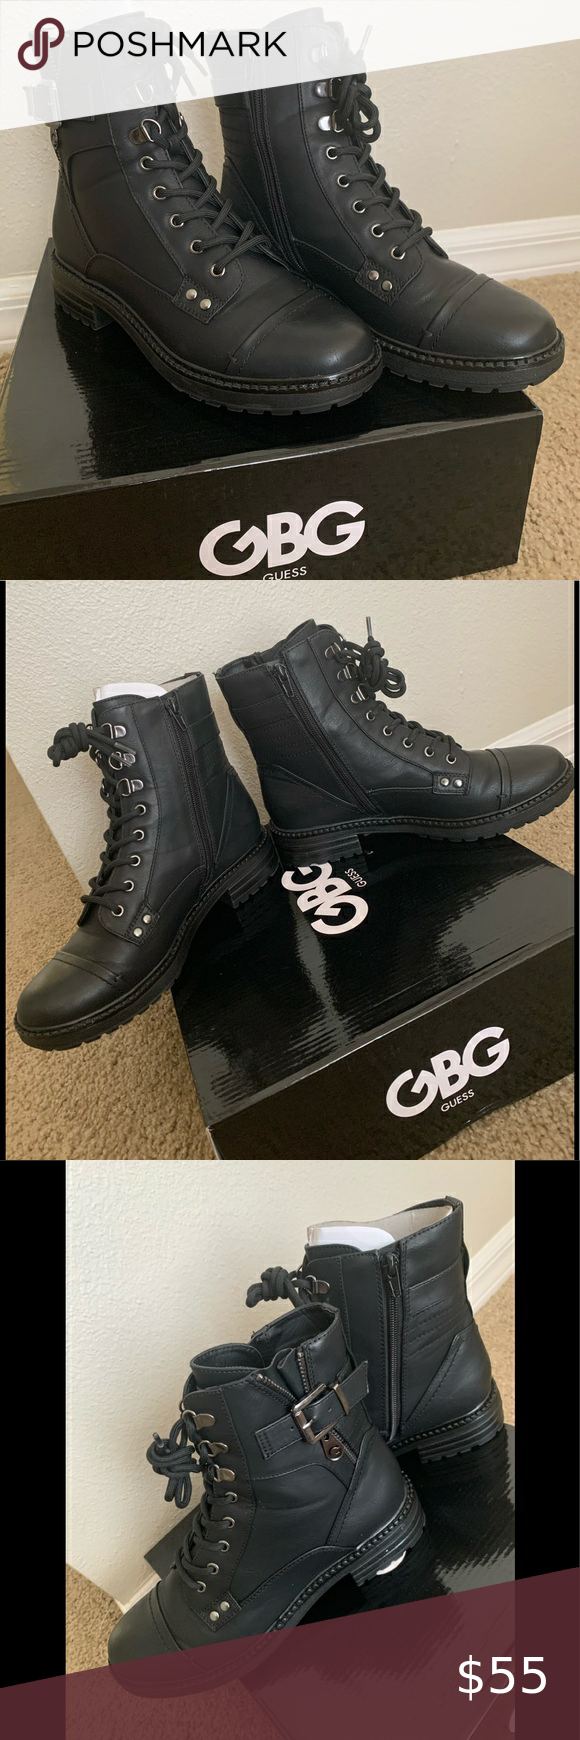 Photo of Guess GBG- Gessy Combat Boots 🥾 Size 7.5M Brand new only worn one time for a …